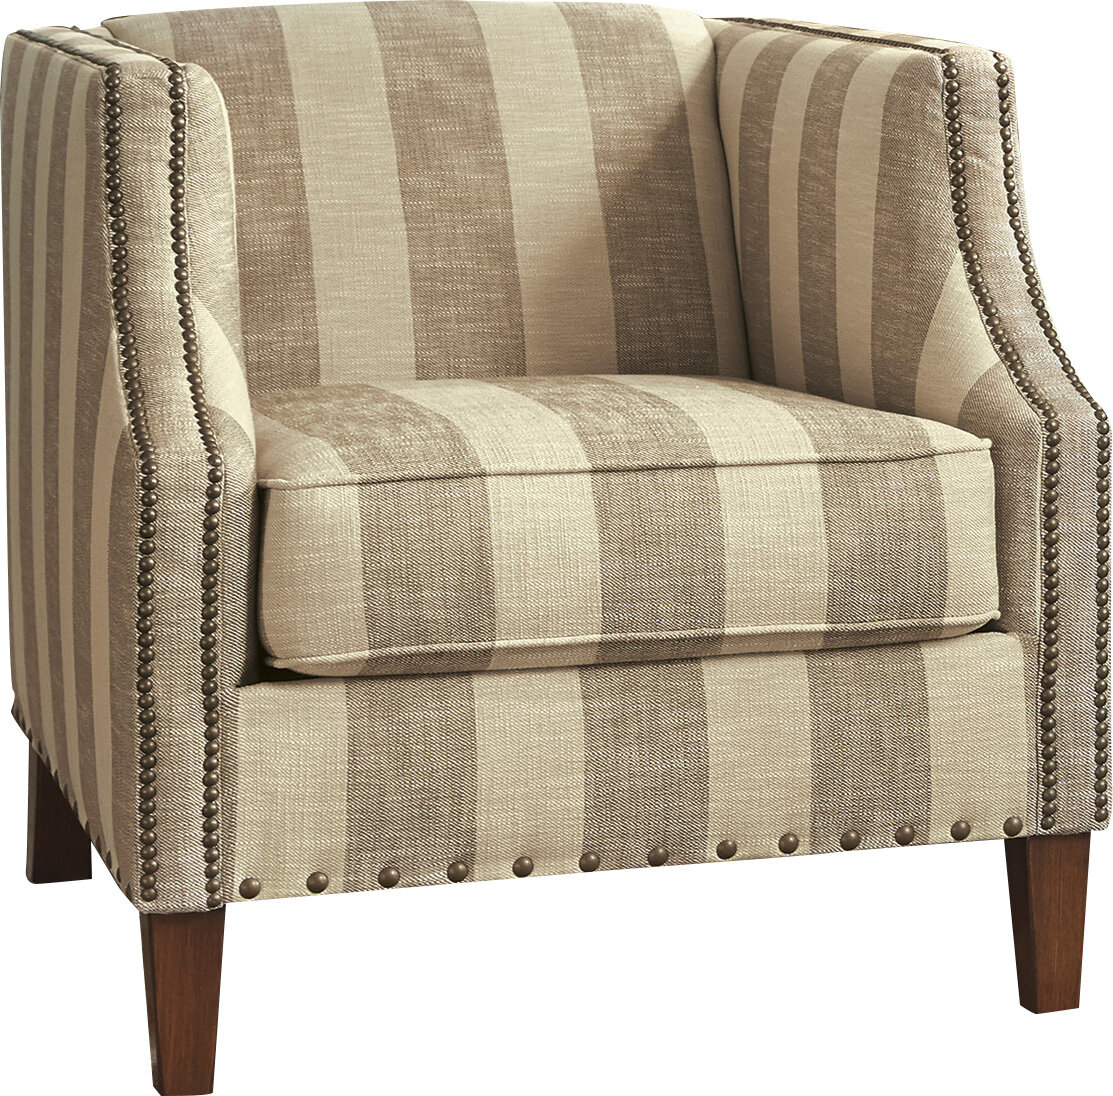 Superieur Darby Home Co Tallmadge Striped Armchair U0026 Reviews | Wayfair